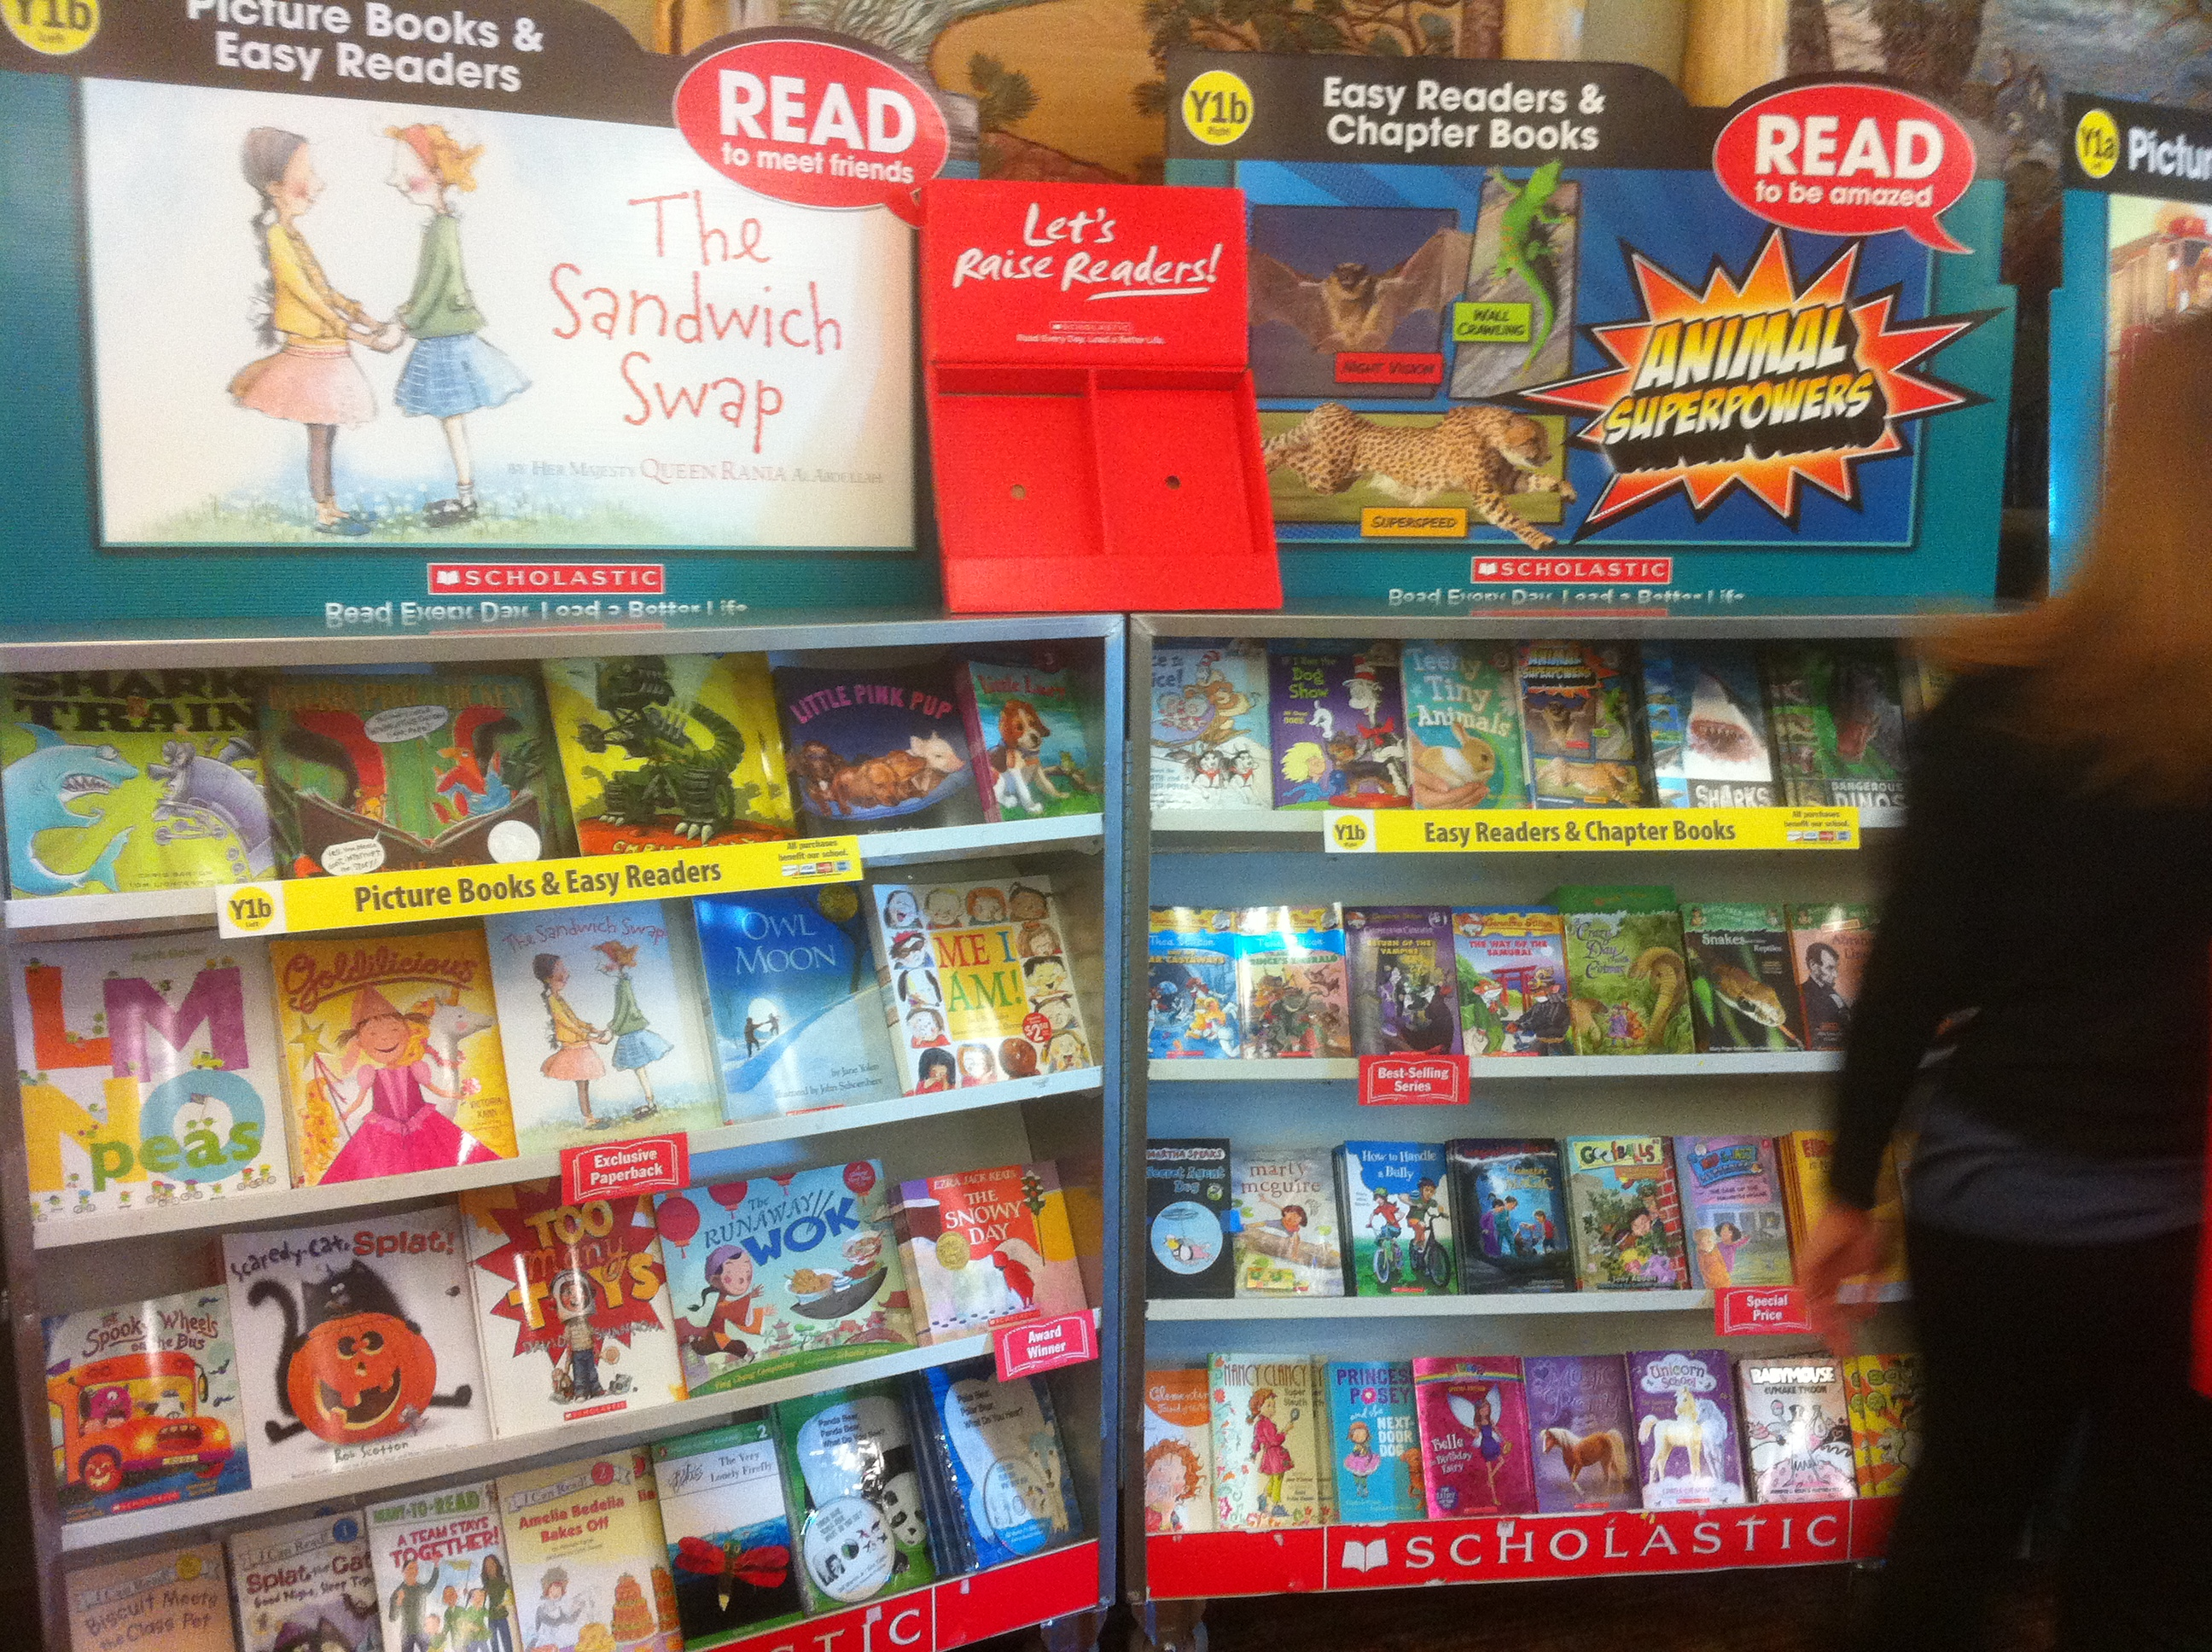 Scholastic Teachables - browse all worksheets, resources, printables, and more for the classroom! Save hours of prep time with our online treasure trove of ready-to-go lessons, printables, and activities for every grade, subject, and skill level.